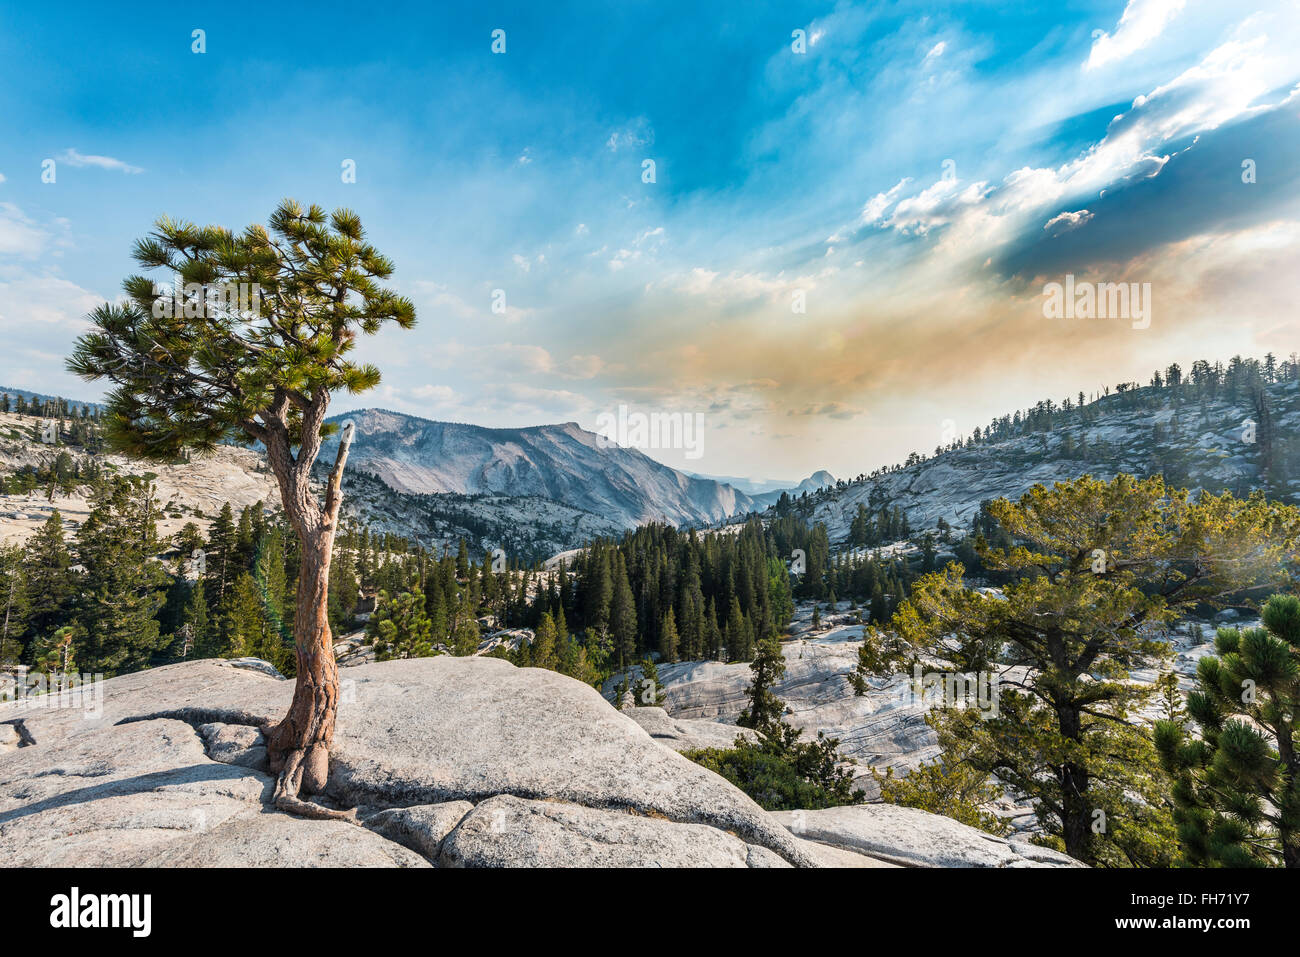 Baum, Kiefer auf einem Felsplateau in Olmsted Point, Yosemite-Nationalpark, Kalifornien, USA Stockbild